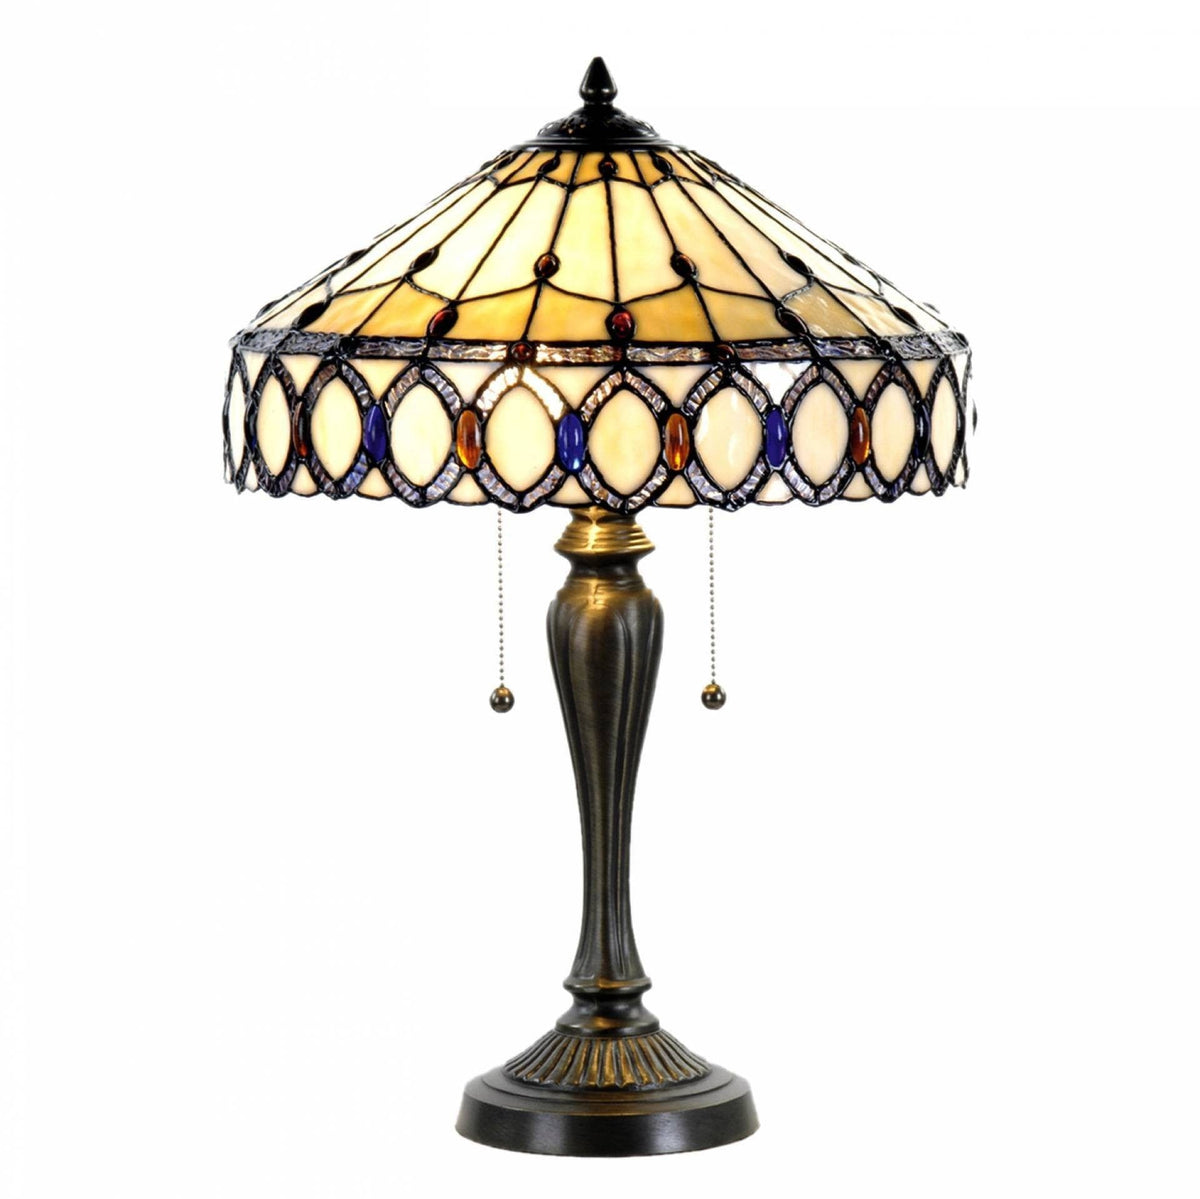 Large Tiffany Lamps - Chichester Tiffany Lamp